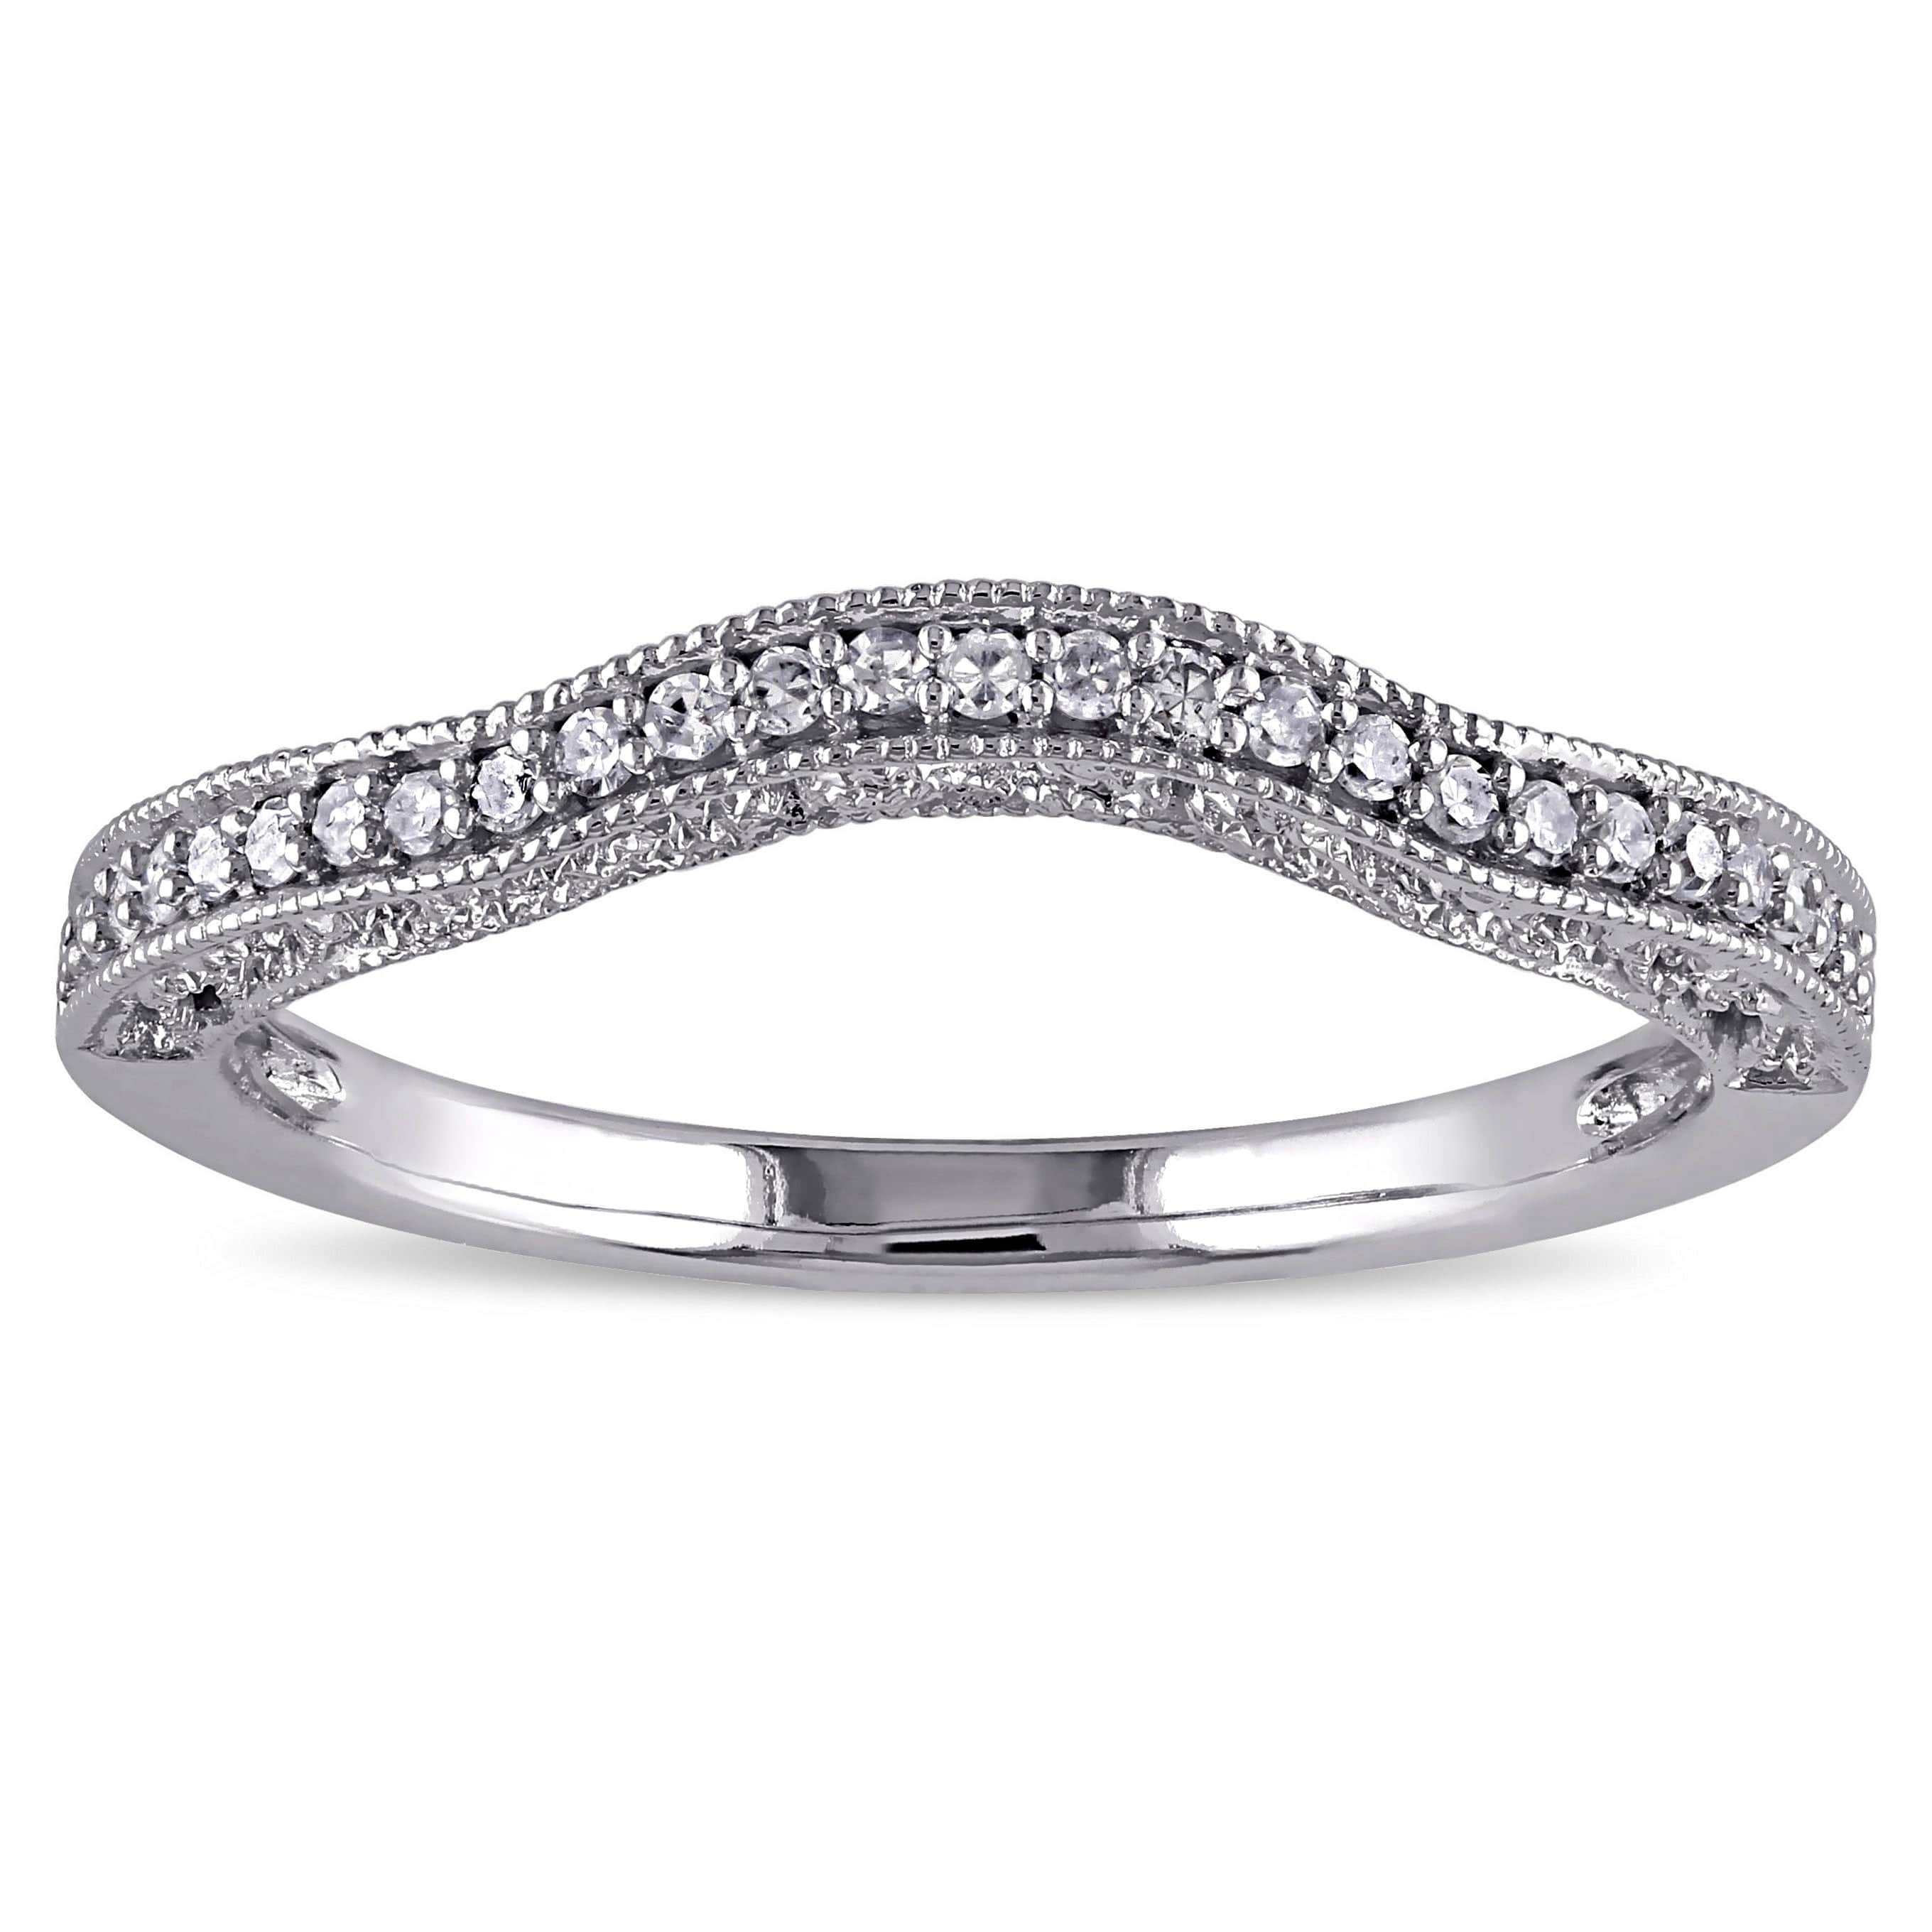 Miadora 14K White Gold 1/8Ct Tdw Diamond Contour Anniversary Style With Regard To 2017 Diamond Vintage Style Contour Wedding Bands In 14K White Gold (Gallery 6 of 15)